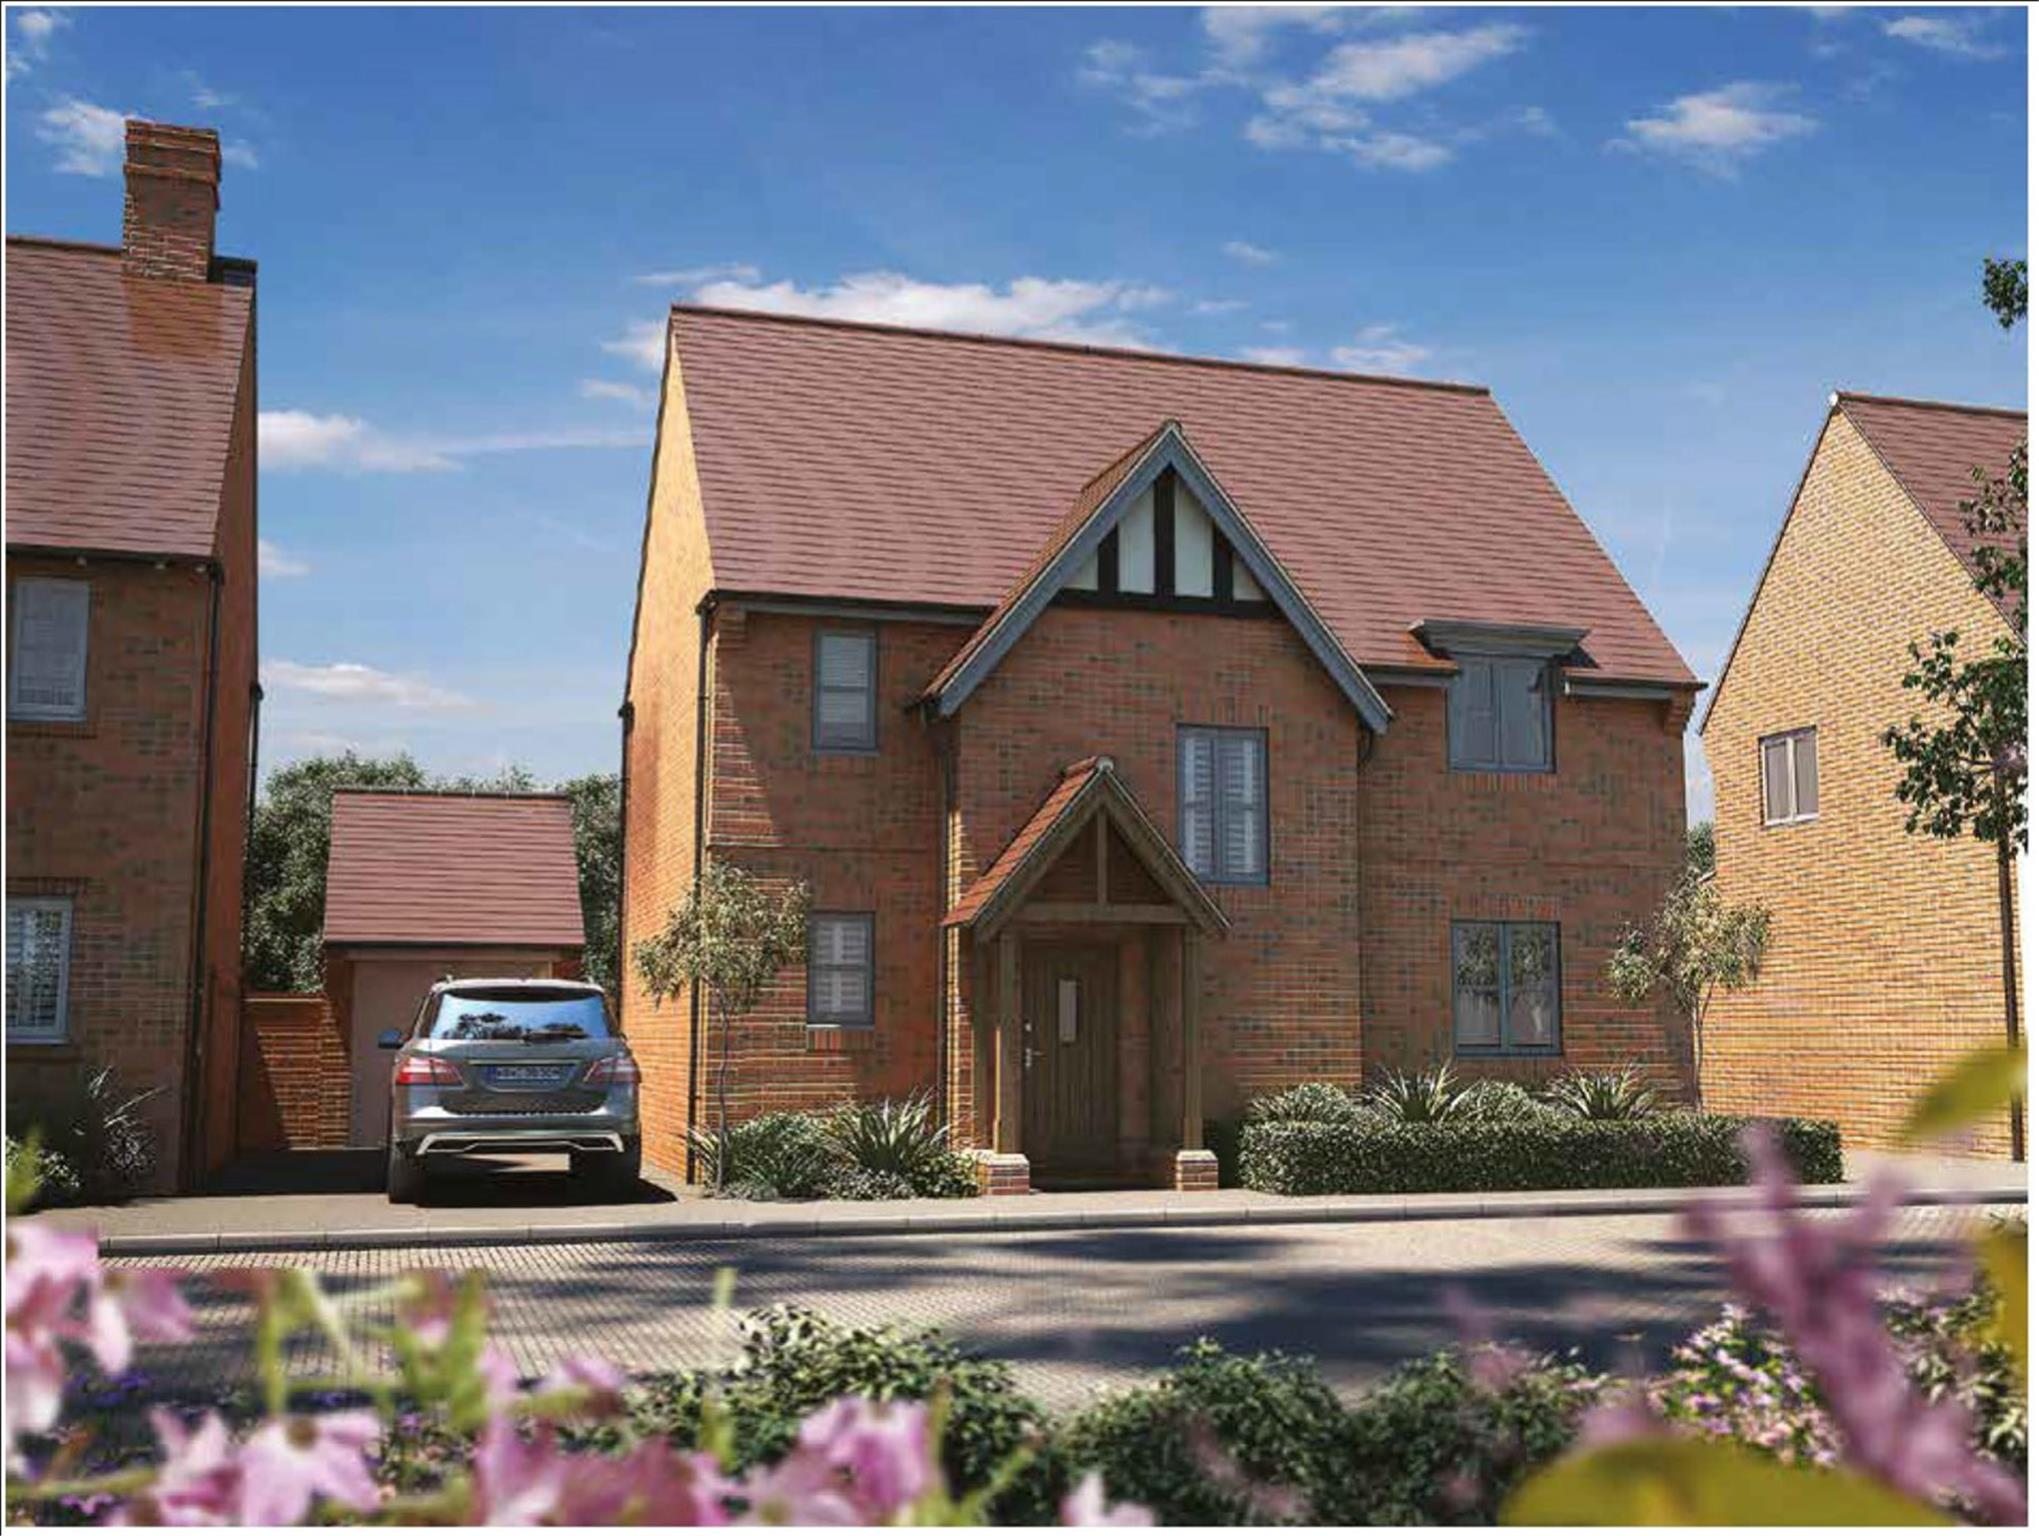 Plot 27, Beech House, Chartist Way, Staunton, Glos GL19